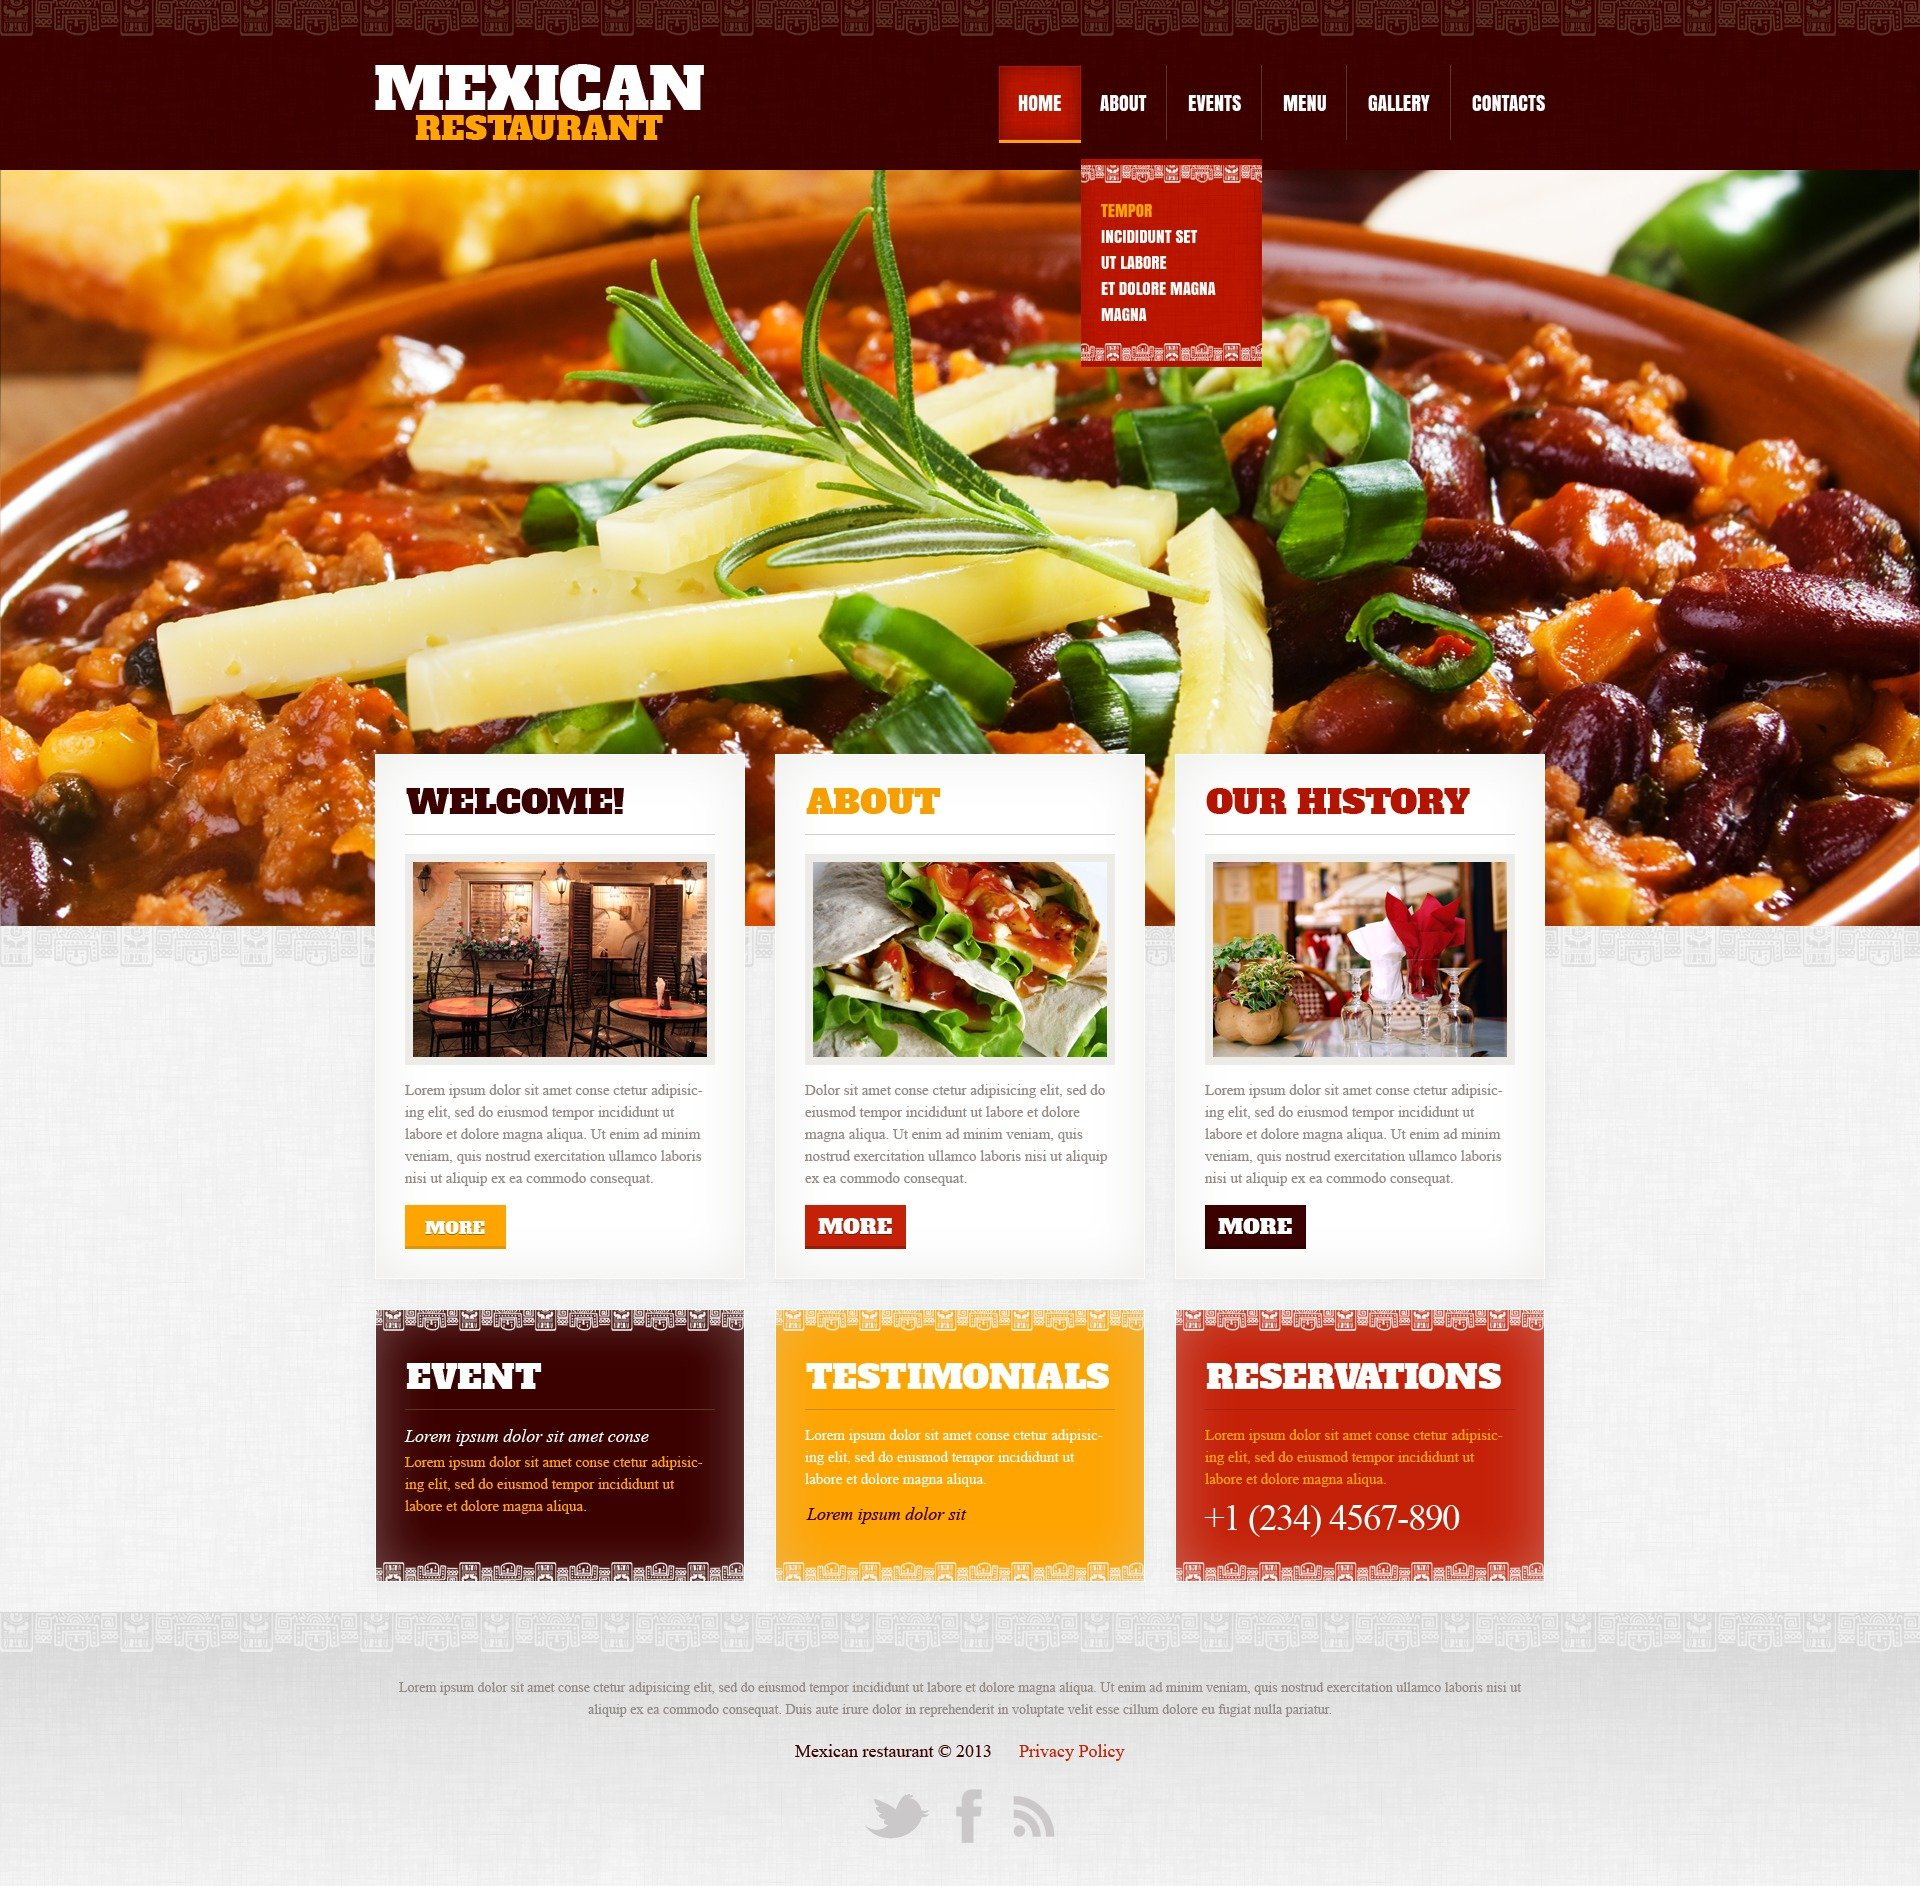 Mexican restaurant website template 42181 mexican restaurant website template pronofoot35fo Choice Image